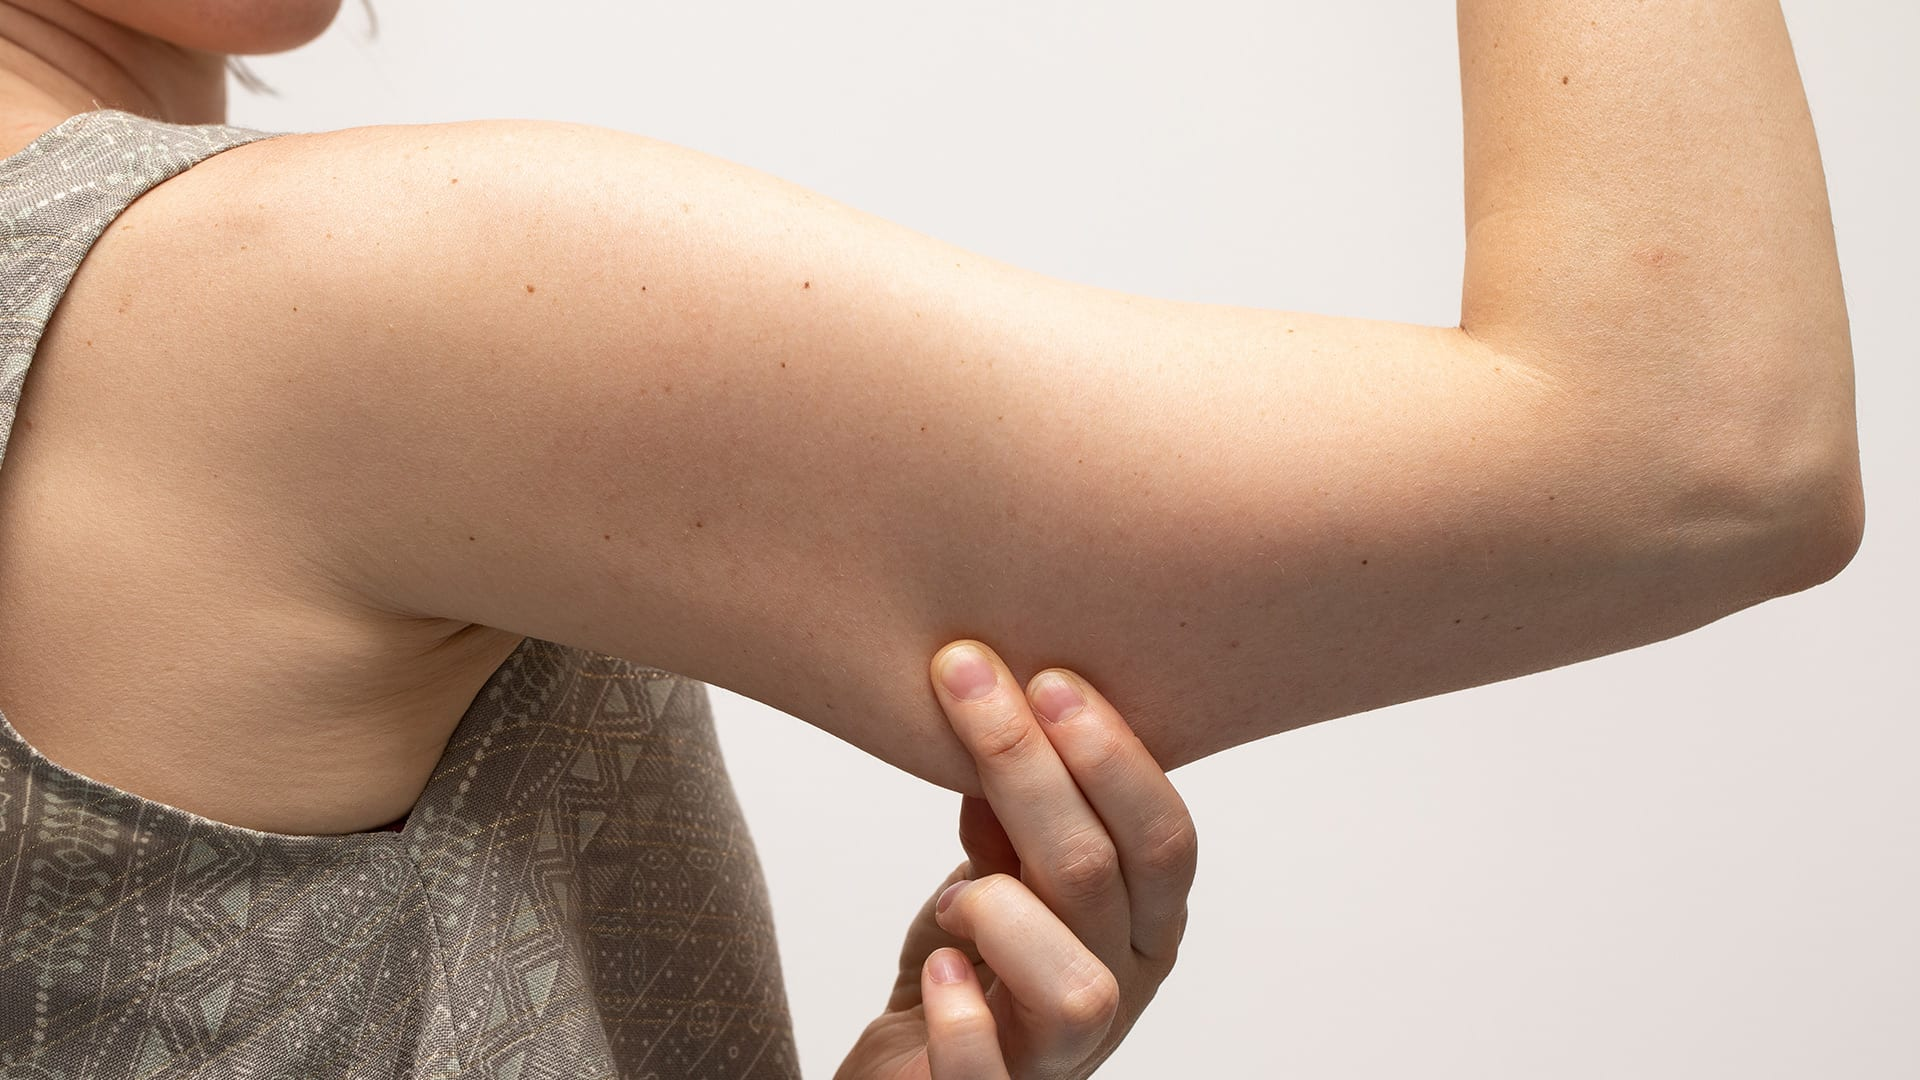 Tone 'em up: the remedies to firm up sagging arms.